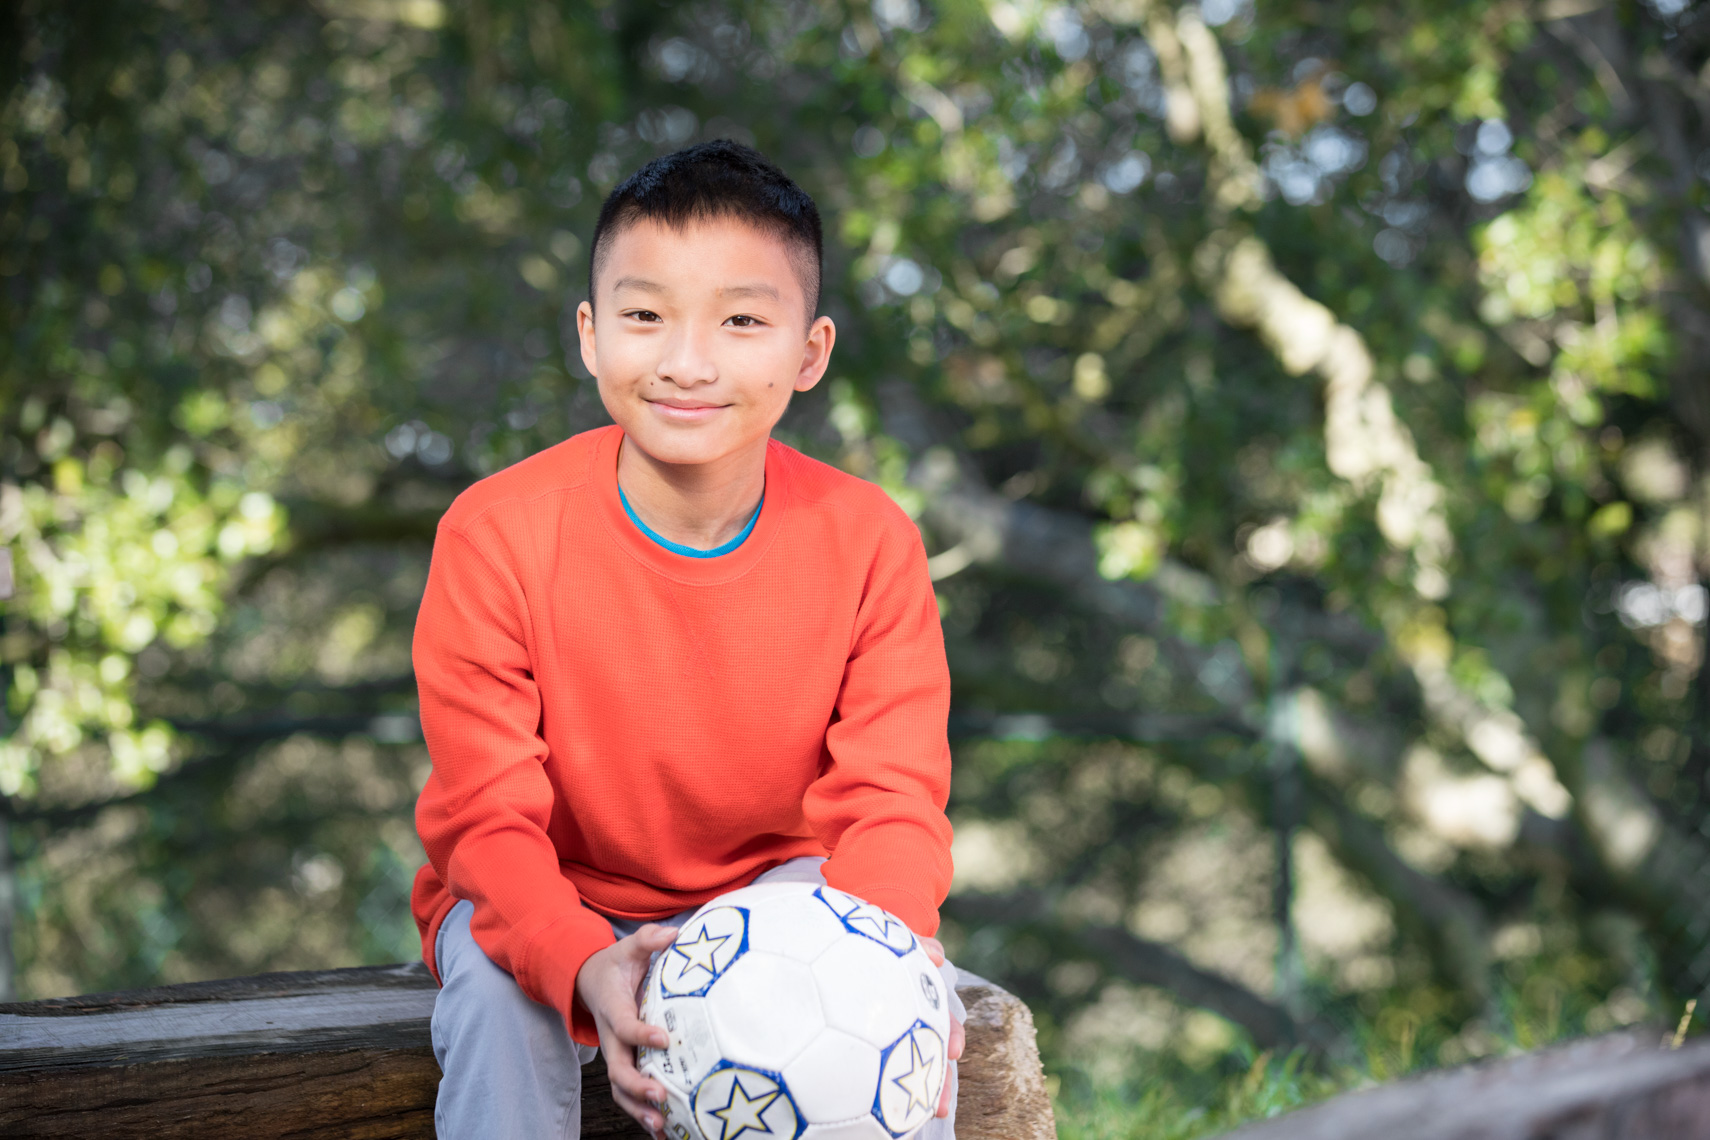 Portrait of a young boy outside holding a soccer ball